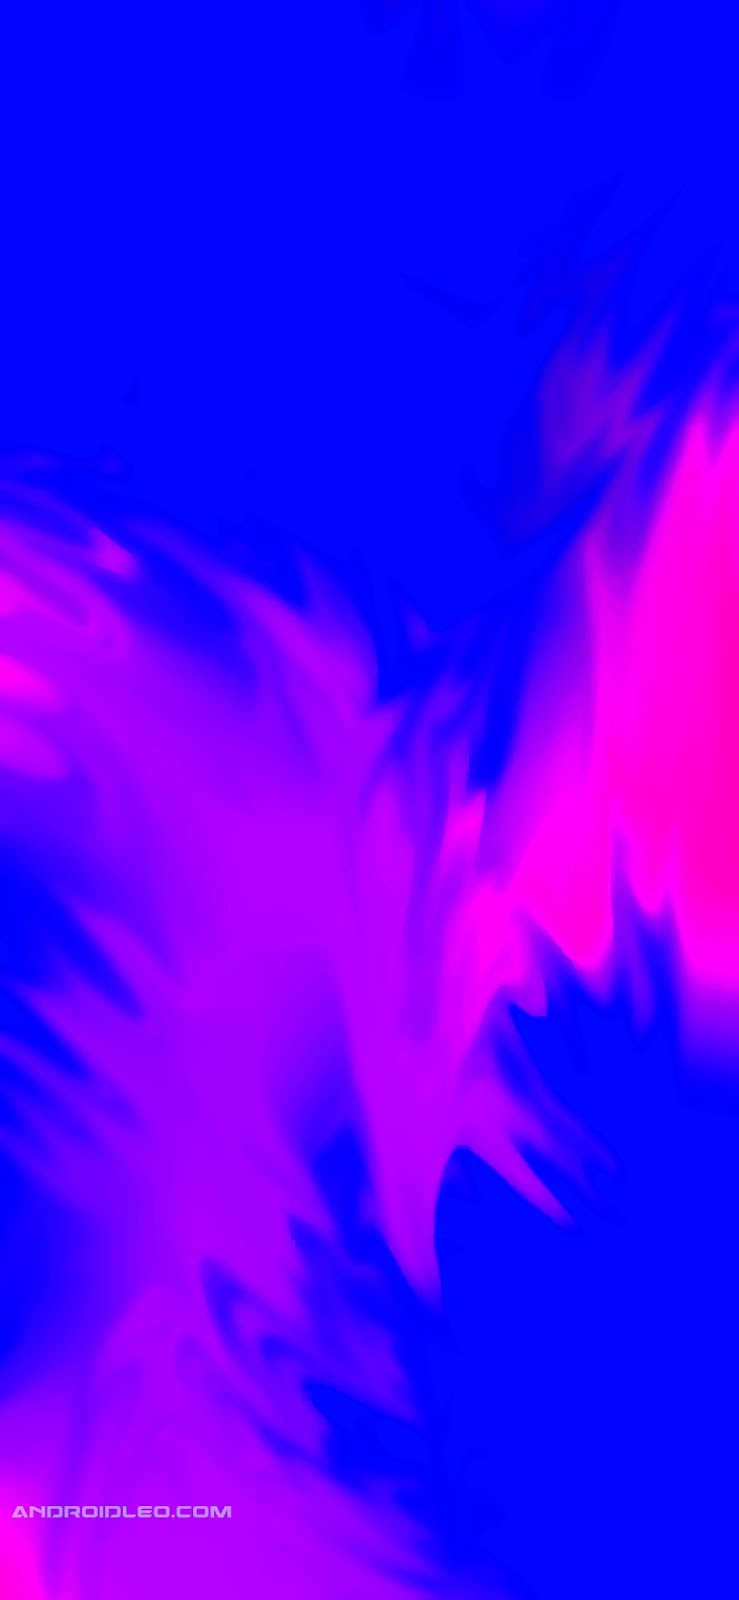 Iphone X Wallpaper Zedge